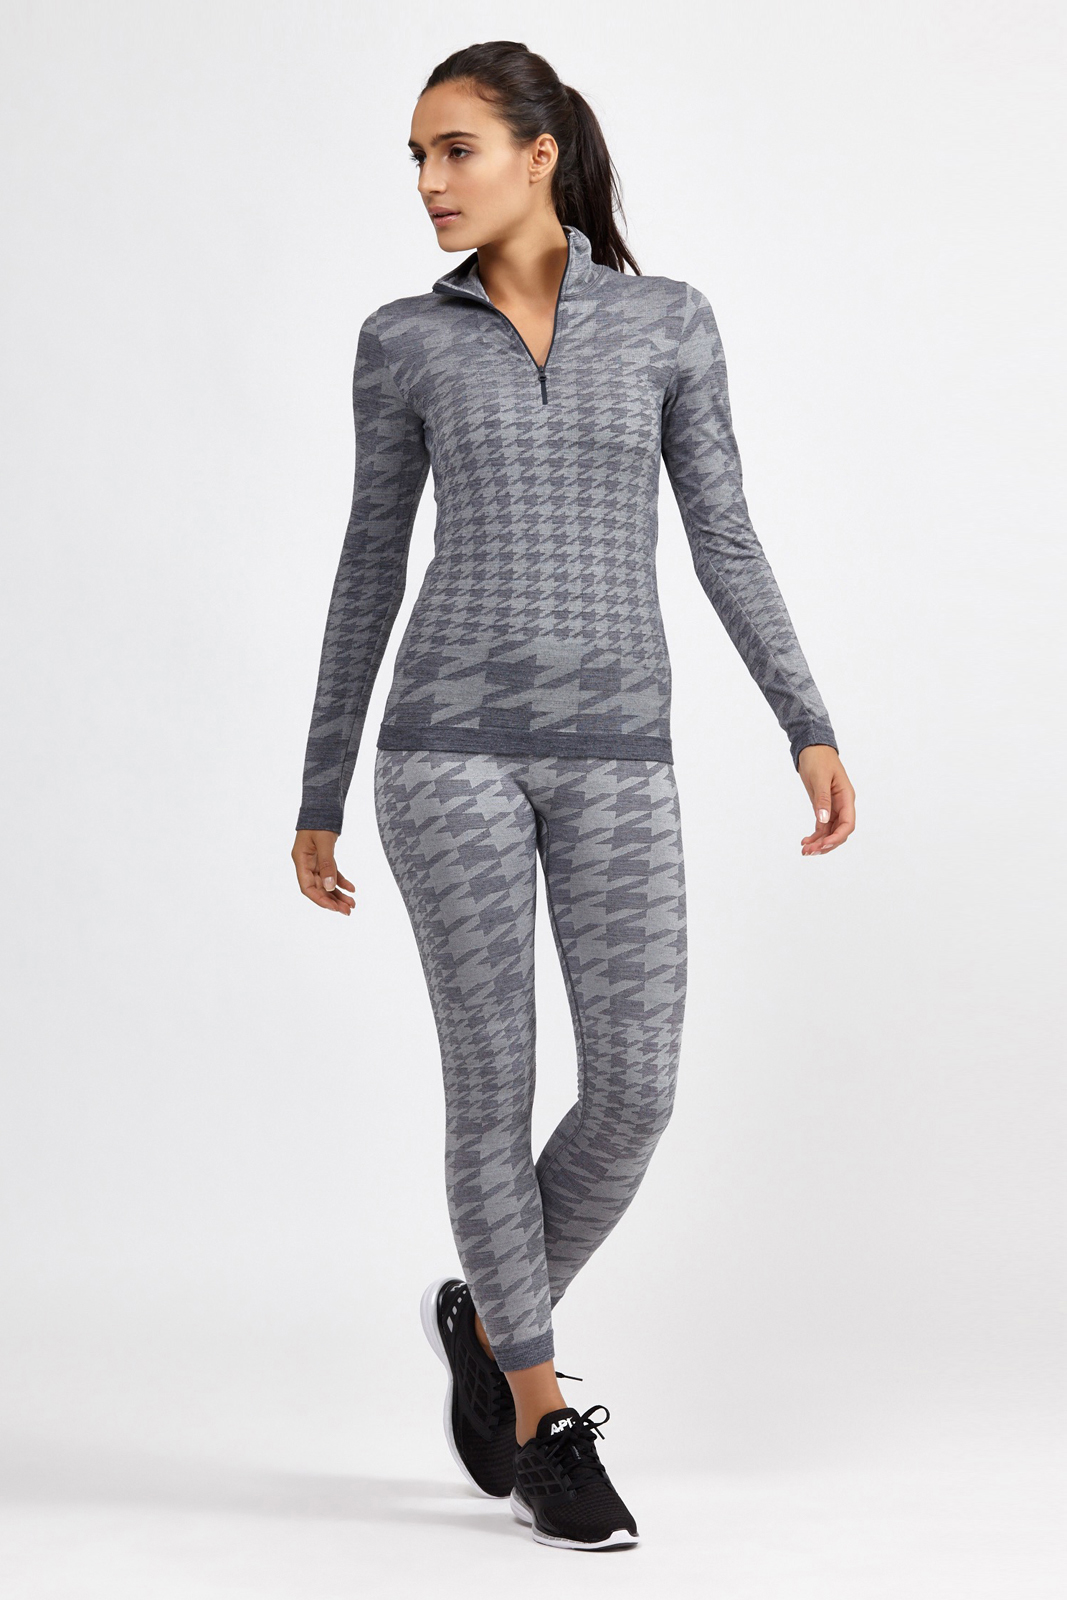 lyst adidas by stella mccartney houndstooth knitted top. Black Bedroom Furniture Sets. Home Design Ideas